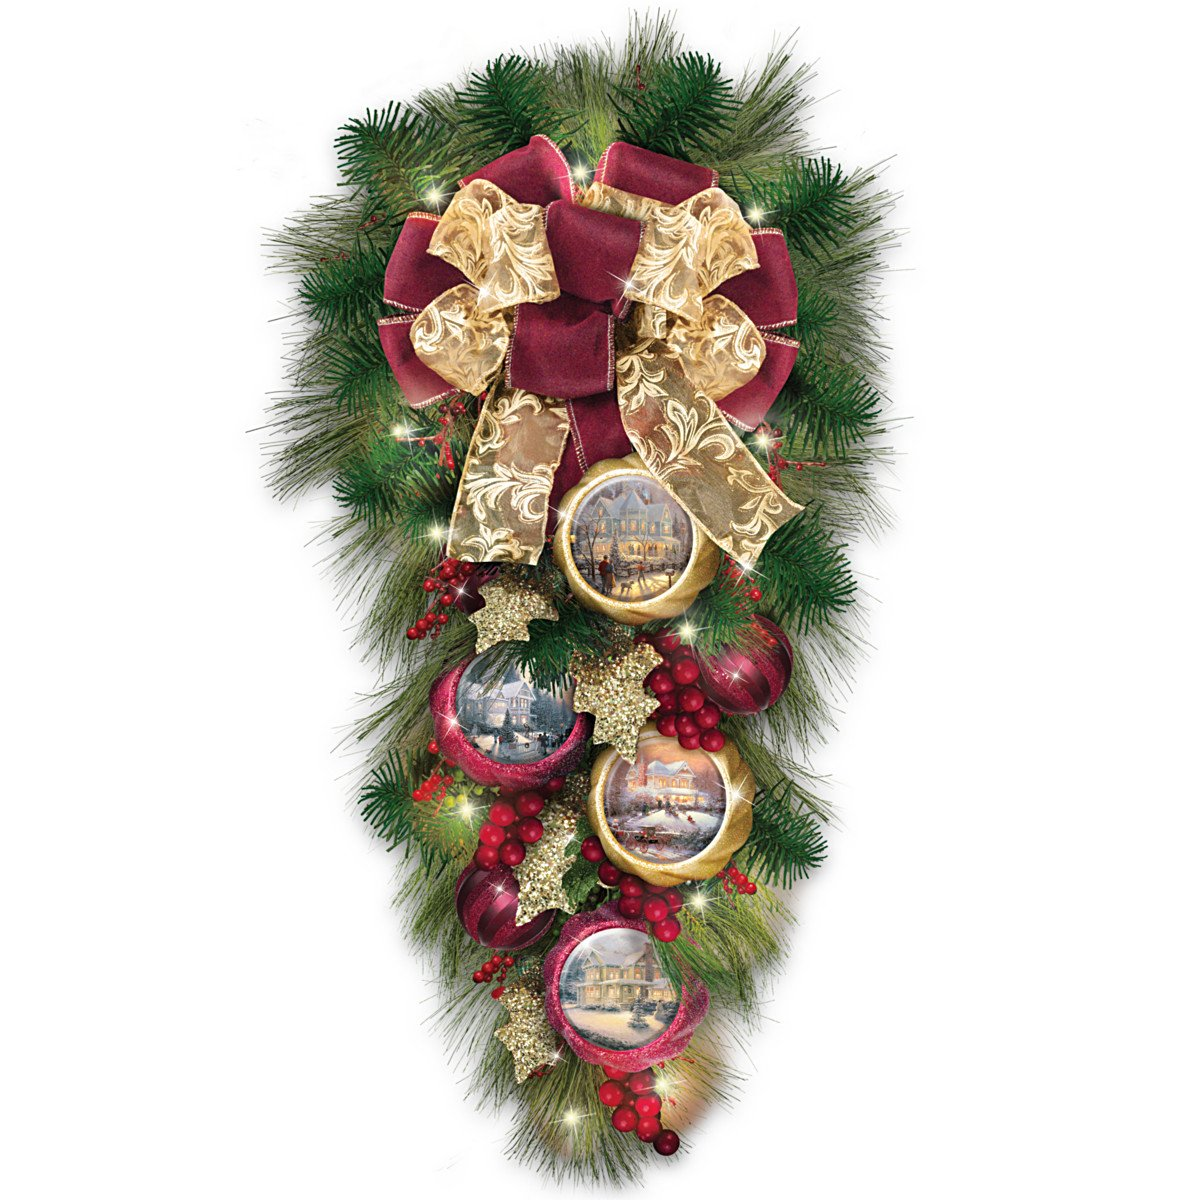 The Bradford Exchange Thomas Kinkade Lighted Teardrop Wreath with Artwork Ornaments: Welcome Christmas